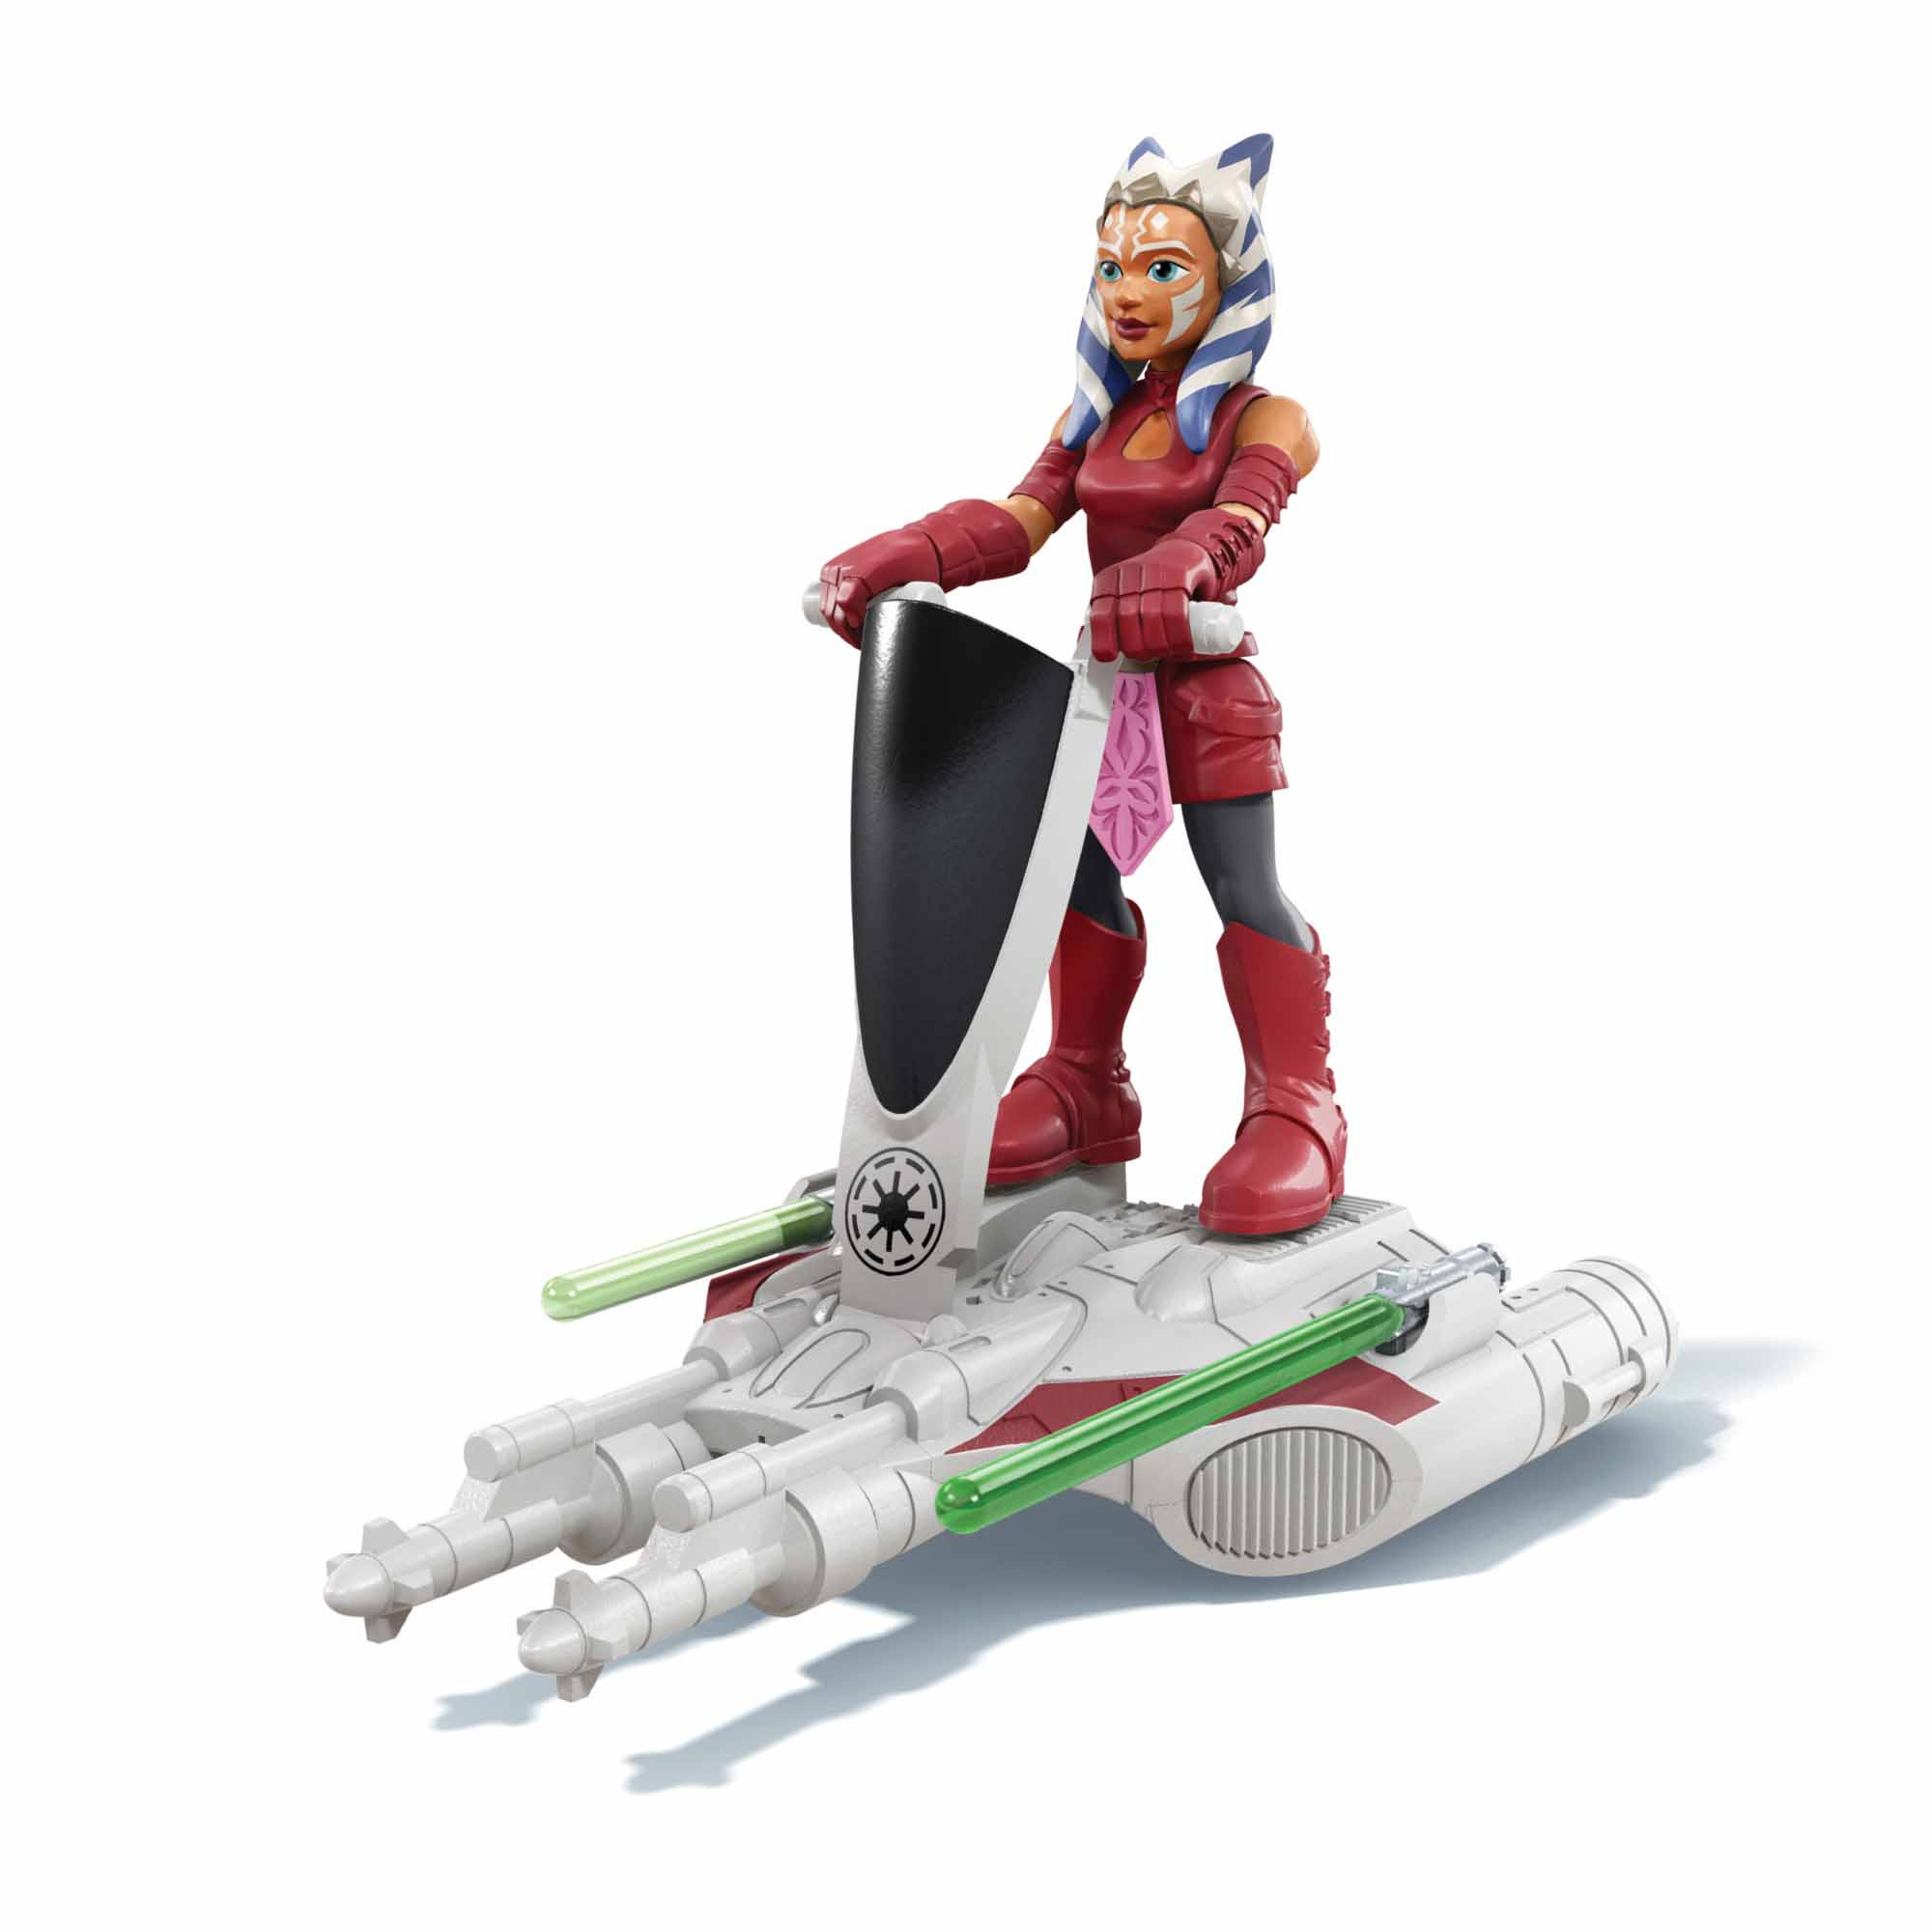 Star Wars Mission Fleet Gear Class Ahsoka Tano Aquatic Attack 2.5-Inch-Scale Figure and Vehicle, for Kids Ages 4 and Up